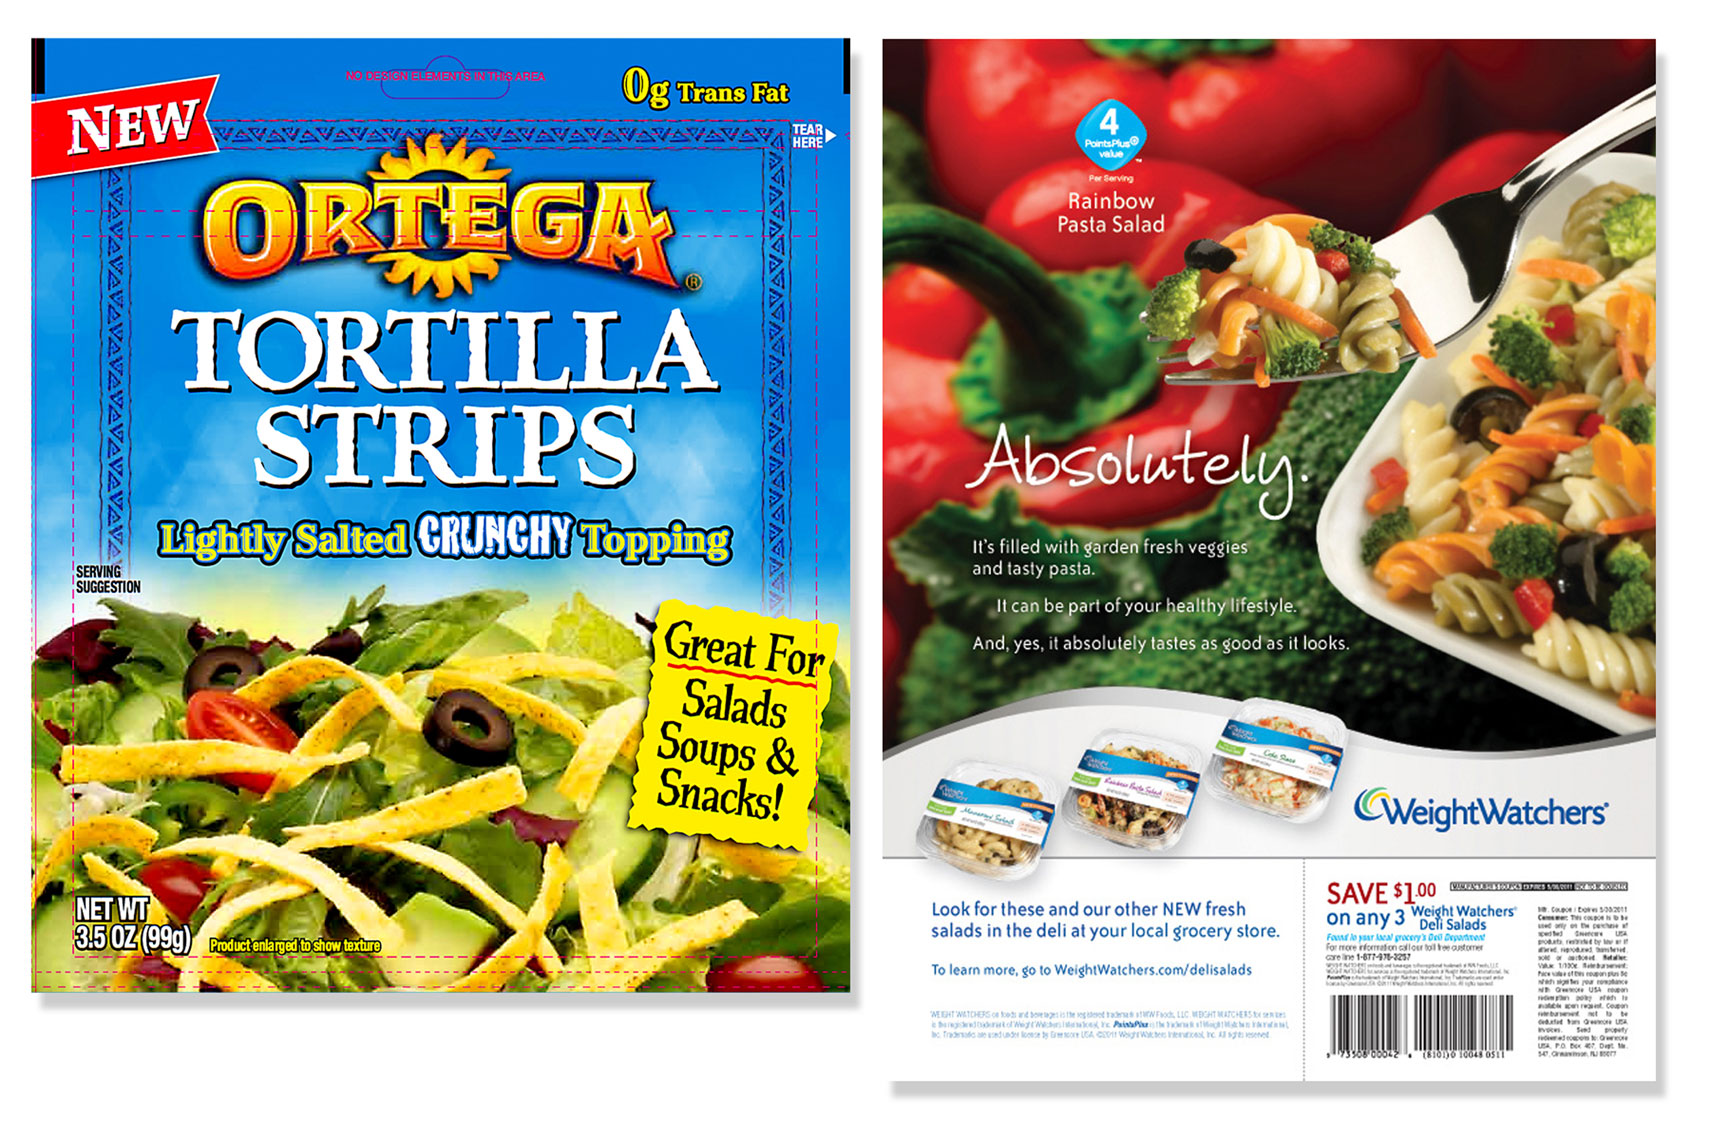 Ortega Tortilla Strips Packaging Photo